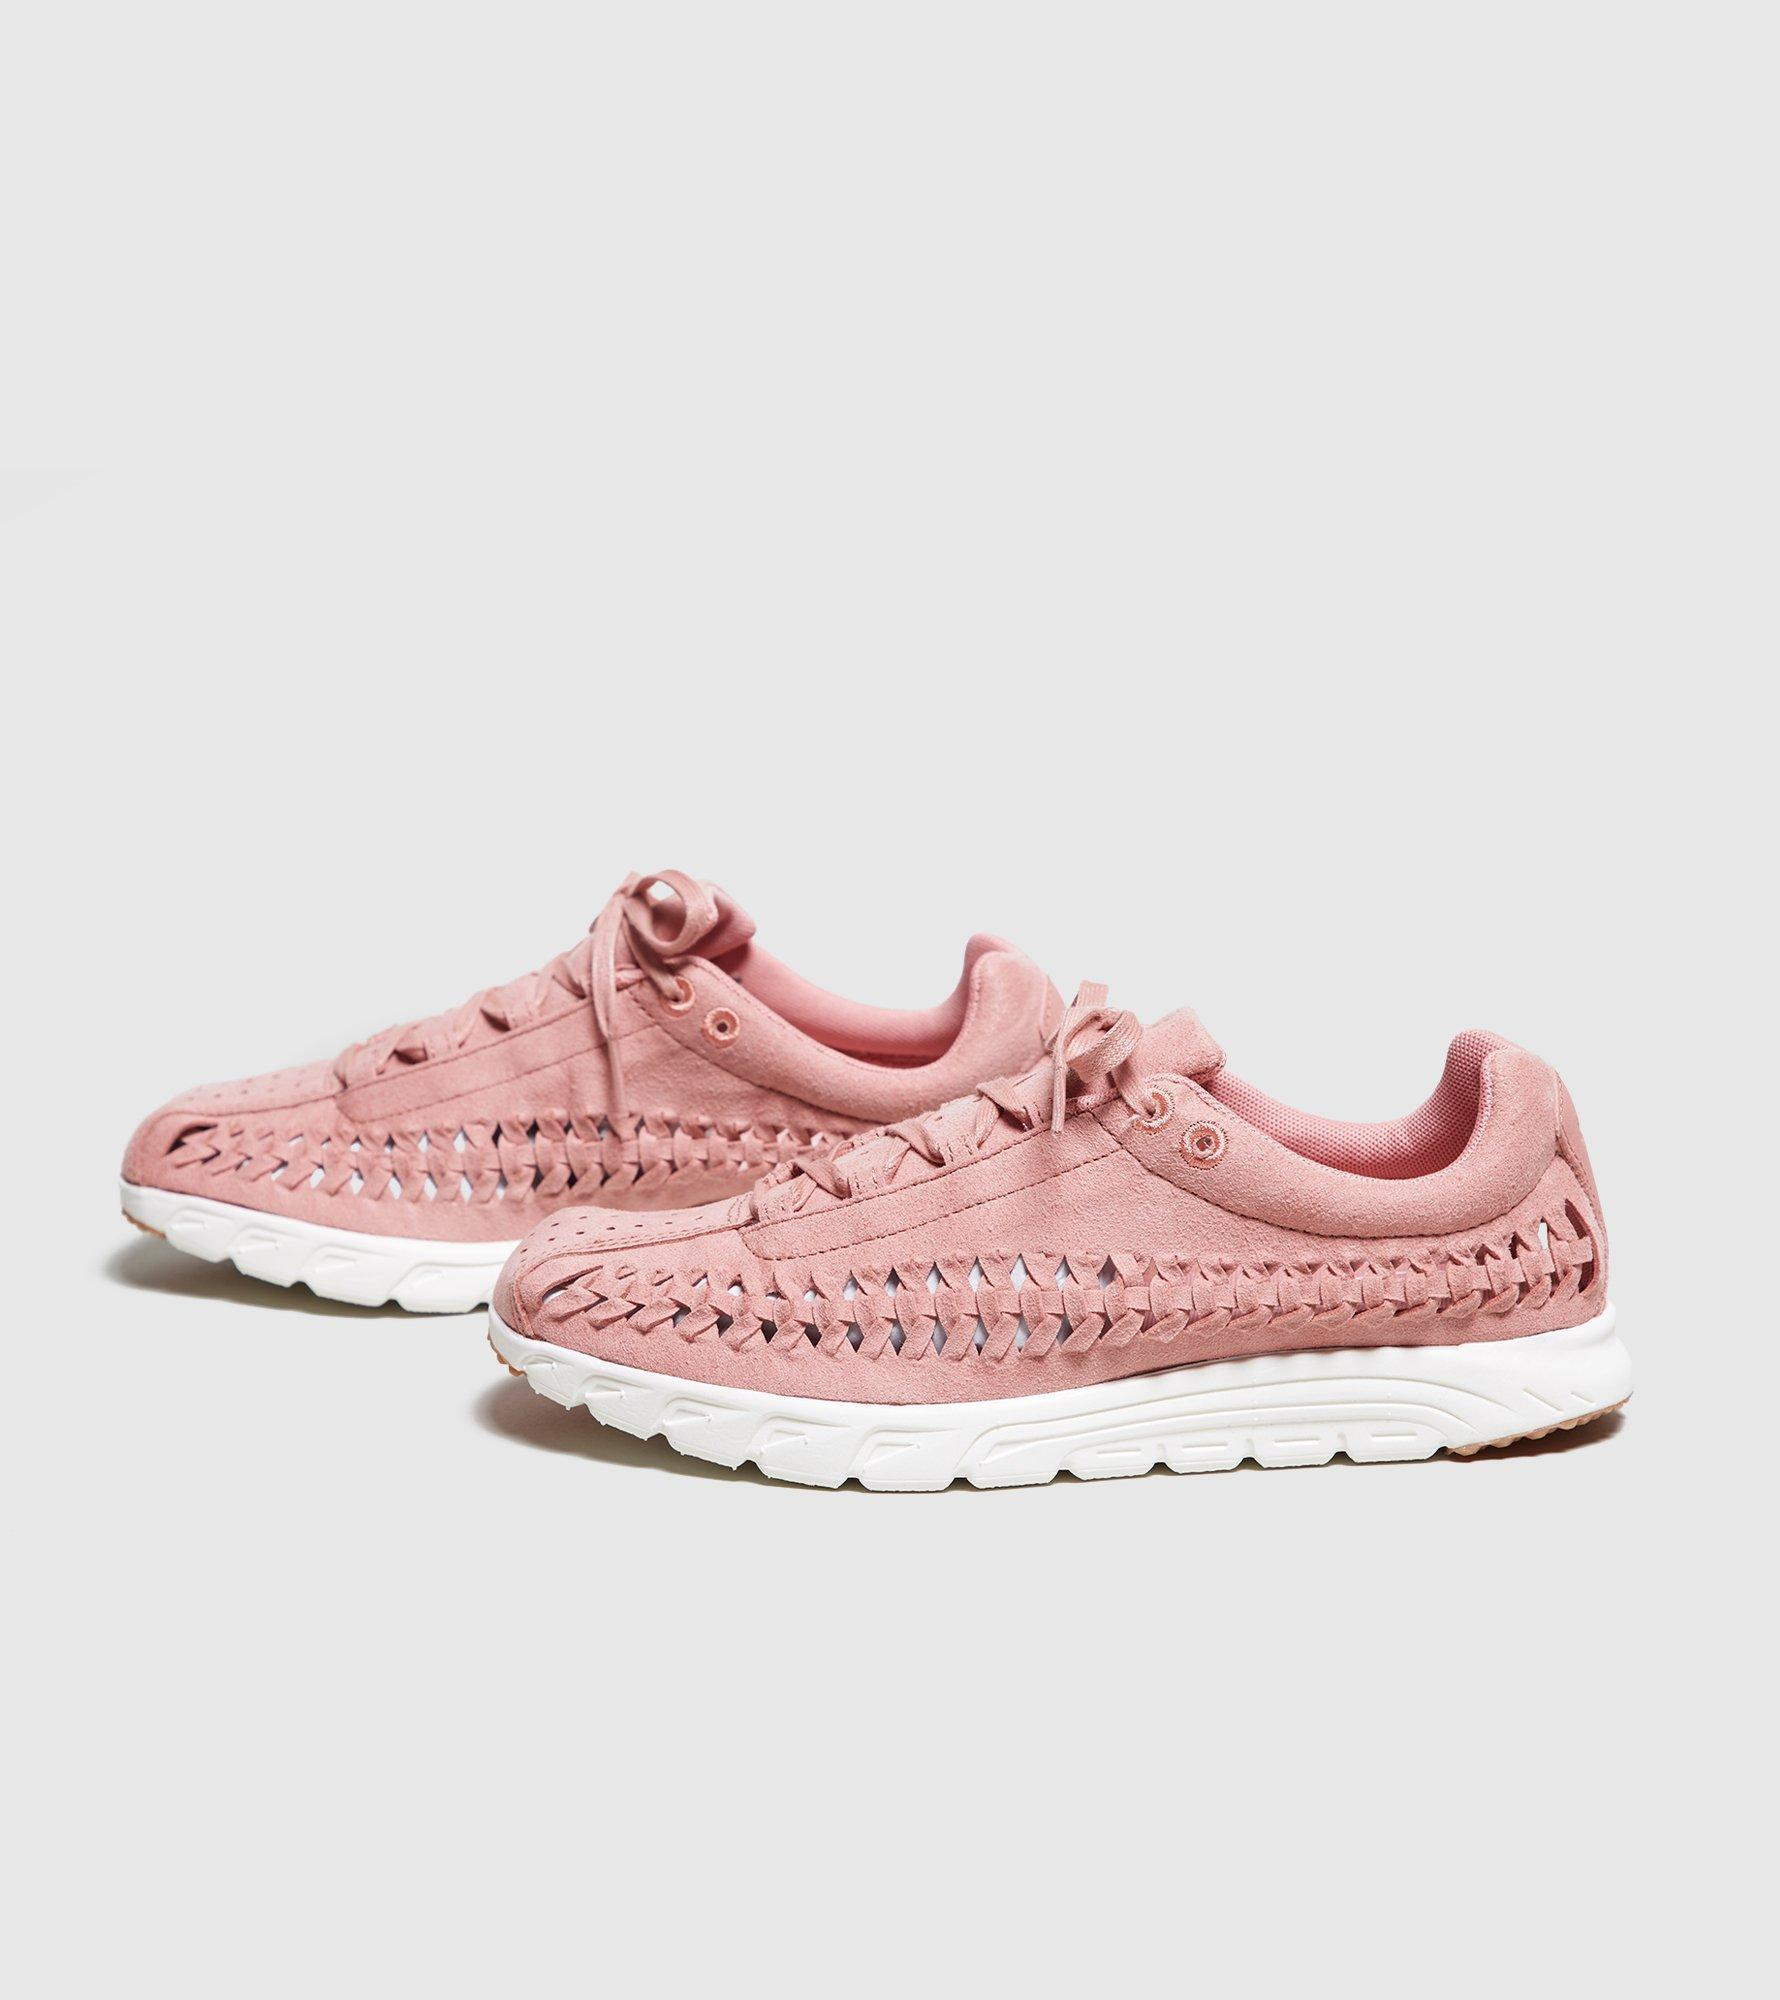 c41bce859282a Lyst - Nike Mayfly Woven in Pink